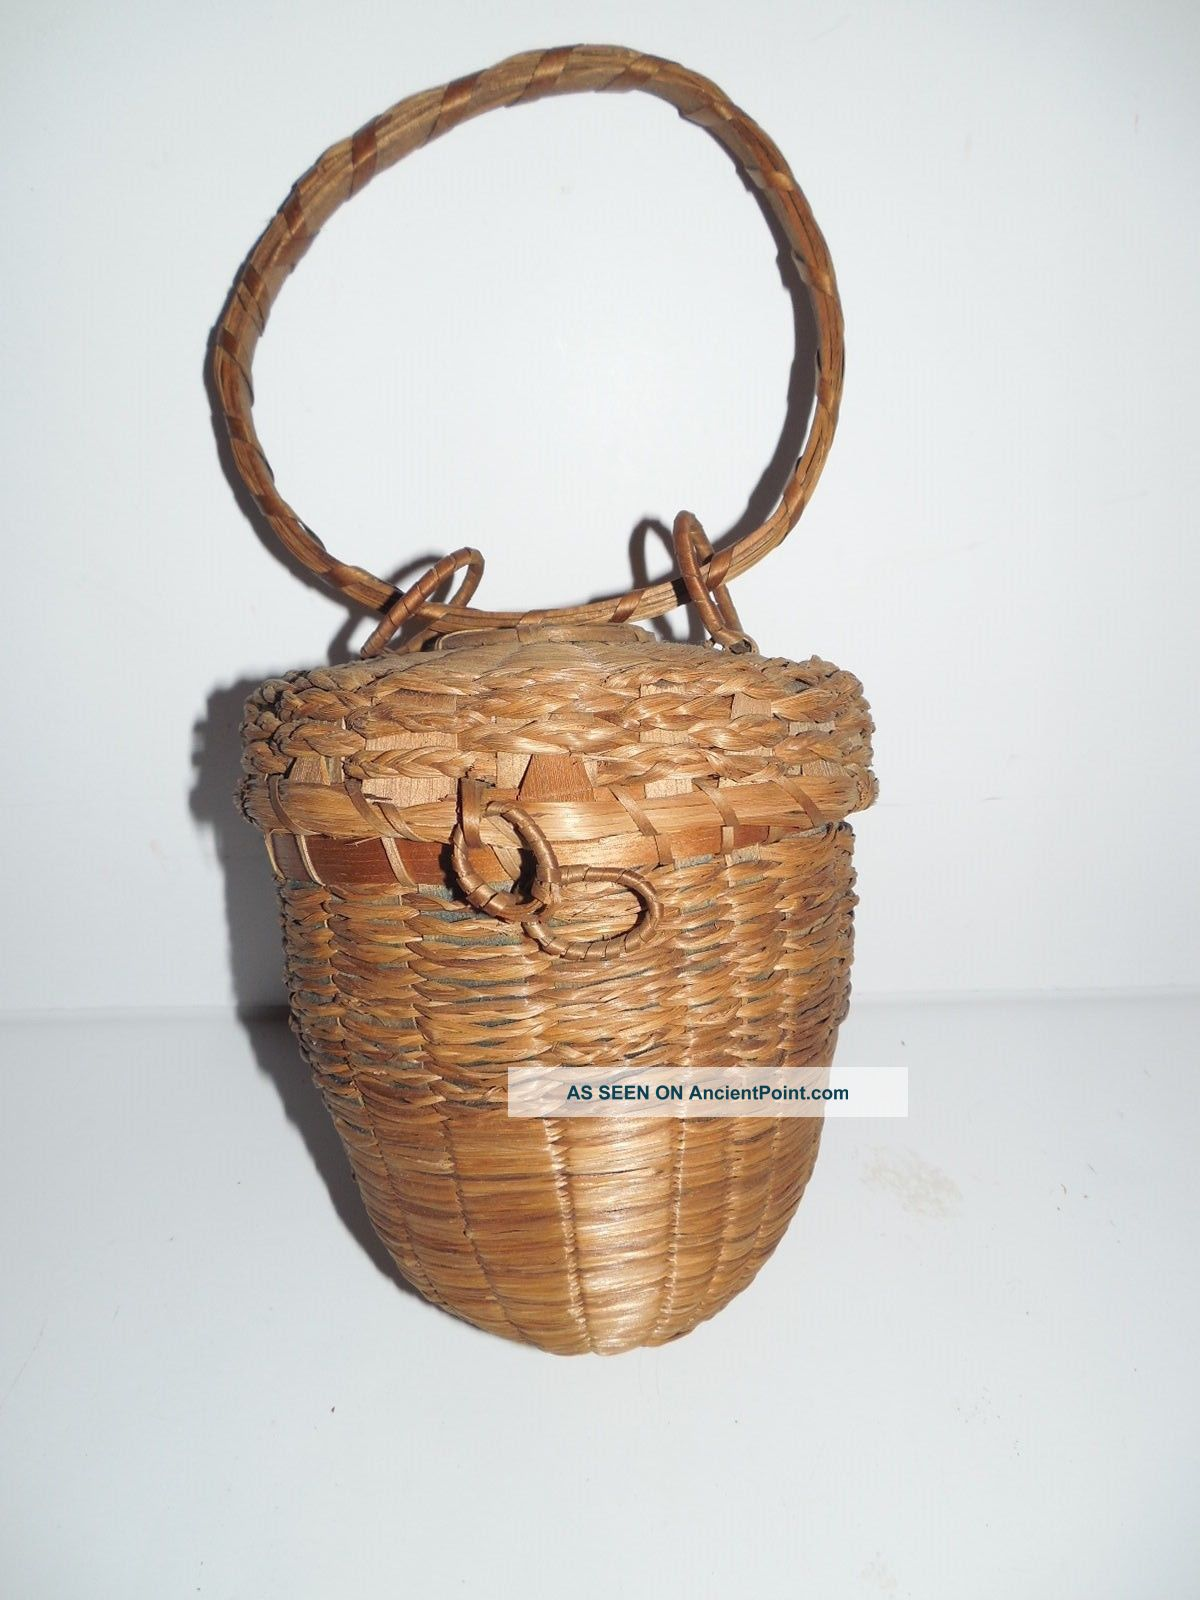 Vintage England / Maine Native American Passamaquoddy Acorn Knitting Basket Native American photo